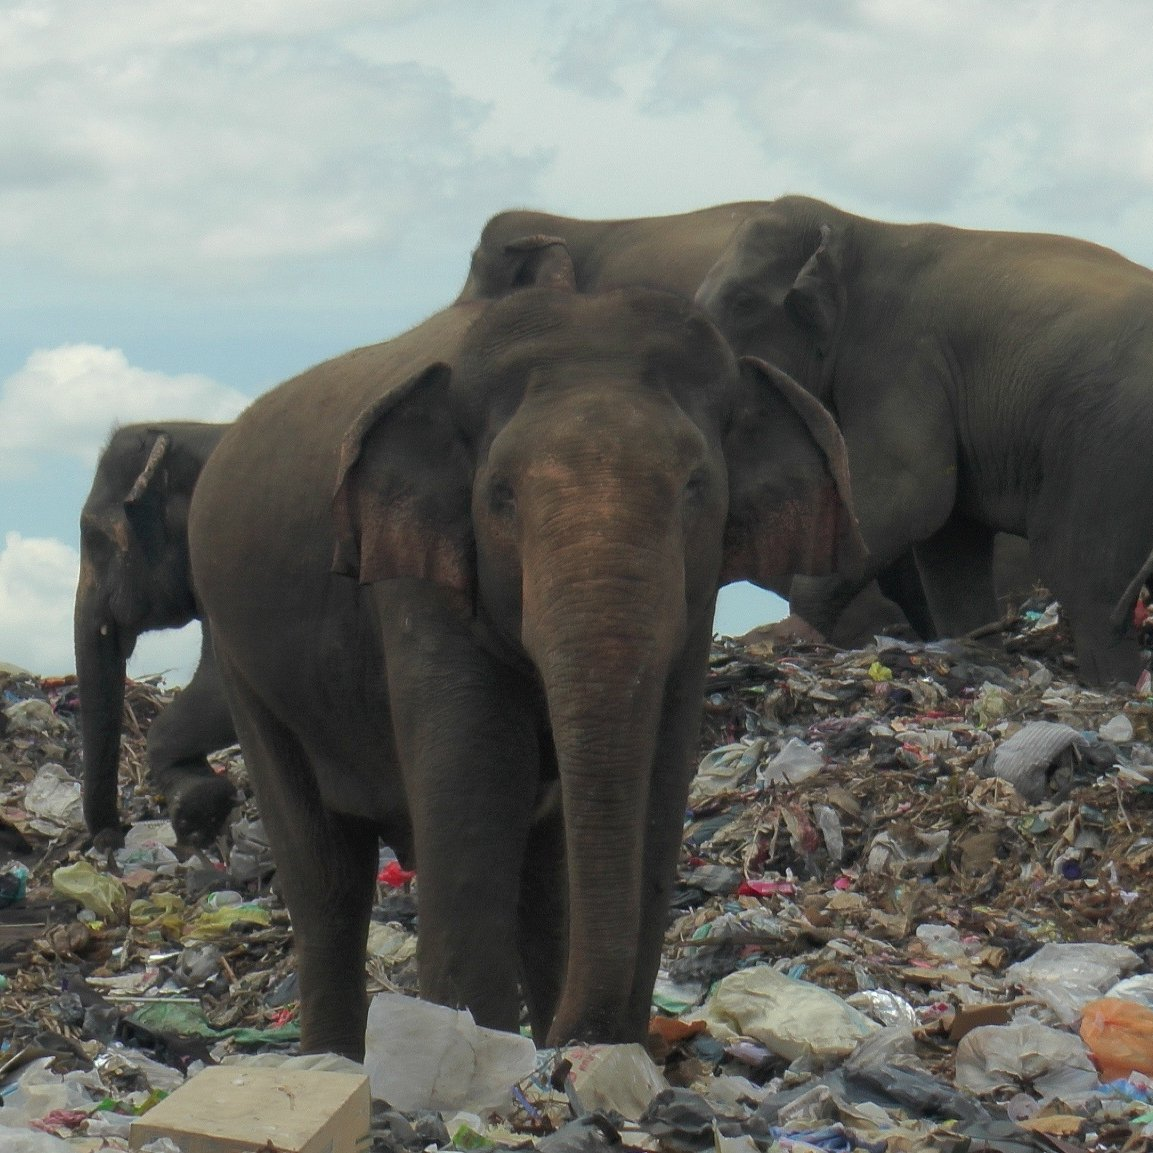 Elephants in Sri Lanka are searching garbage for food because a dump was built in the middle of their habitat.  The elephants are eating plastic waste, slowly killing them, say officials. A record 361 died last year from causes like plastic in their food, poison or being shot. https://t.co/jf5uGqVm2s